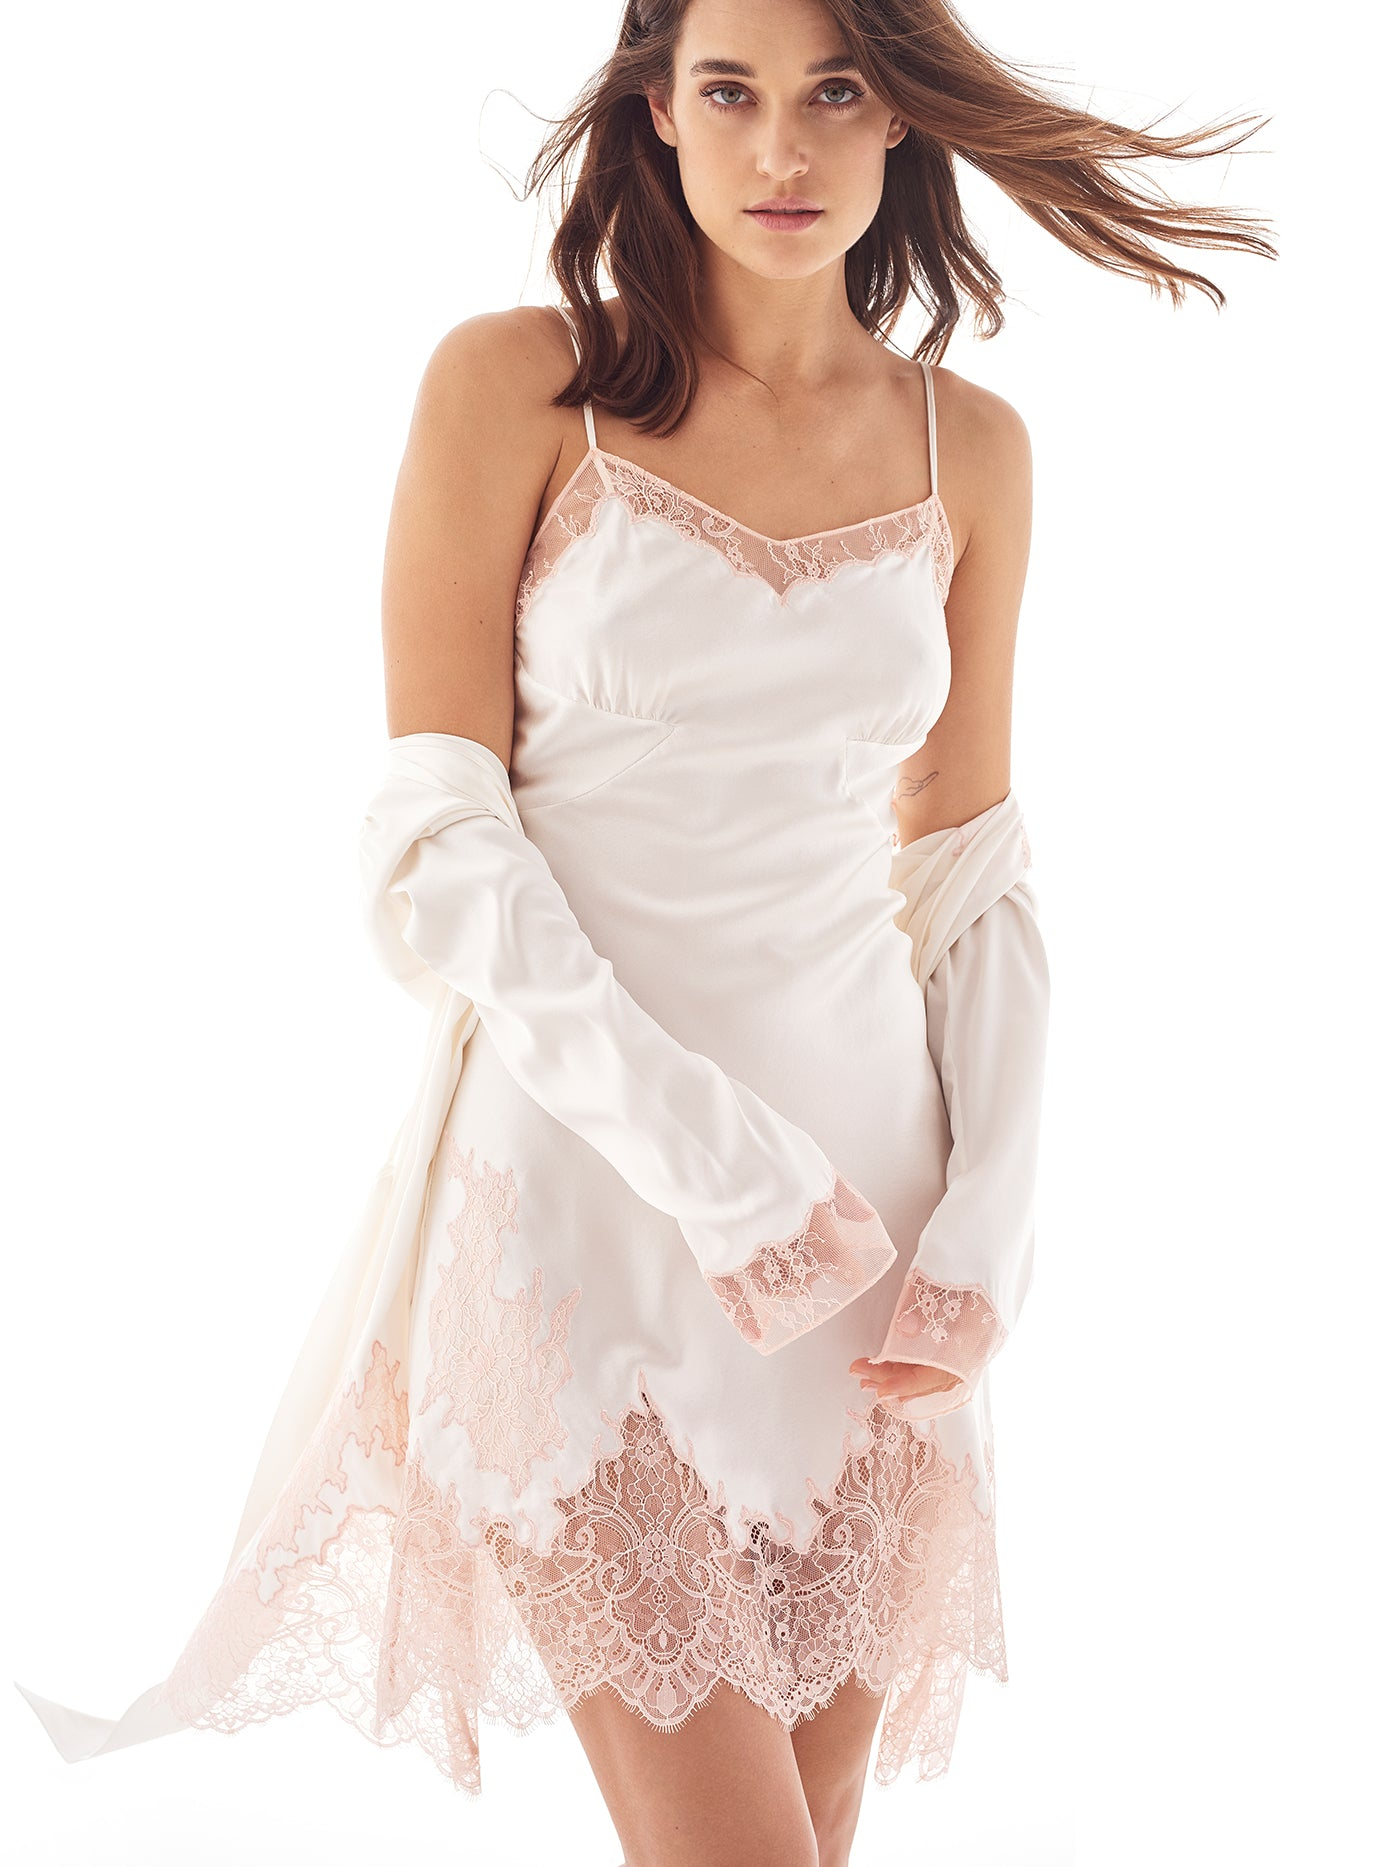 Alma Square | Luxury White Silk Designer Nightwear | Myla